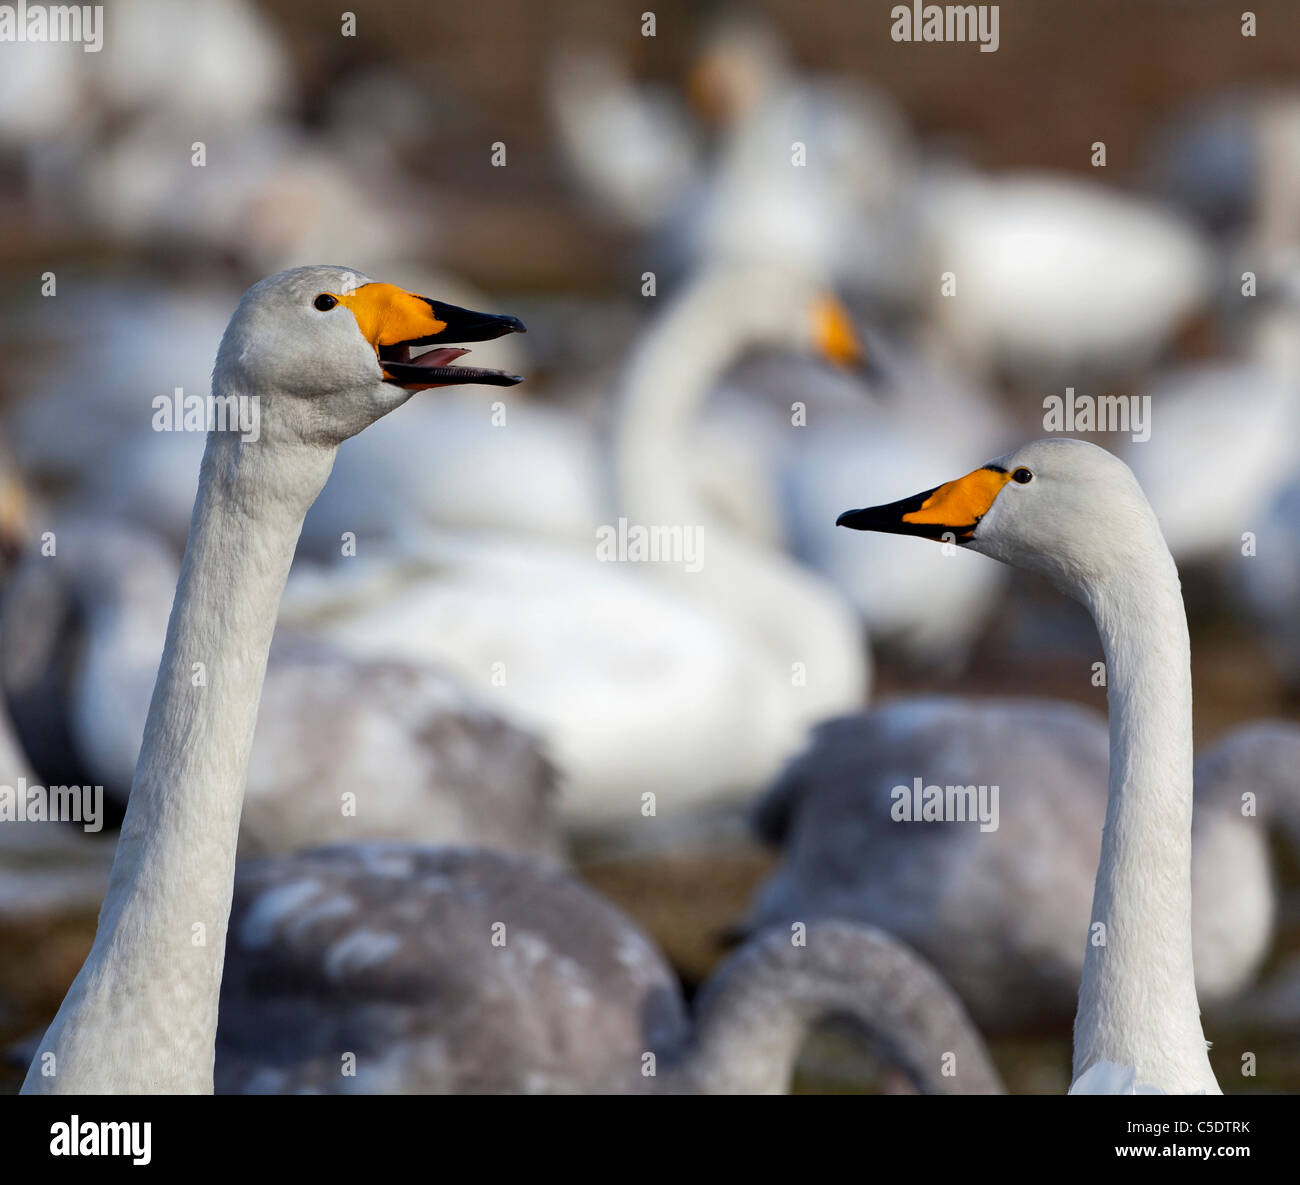 Close-up of two whooper swans beaks against blurred swans - Stock Image